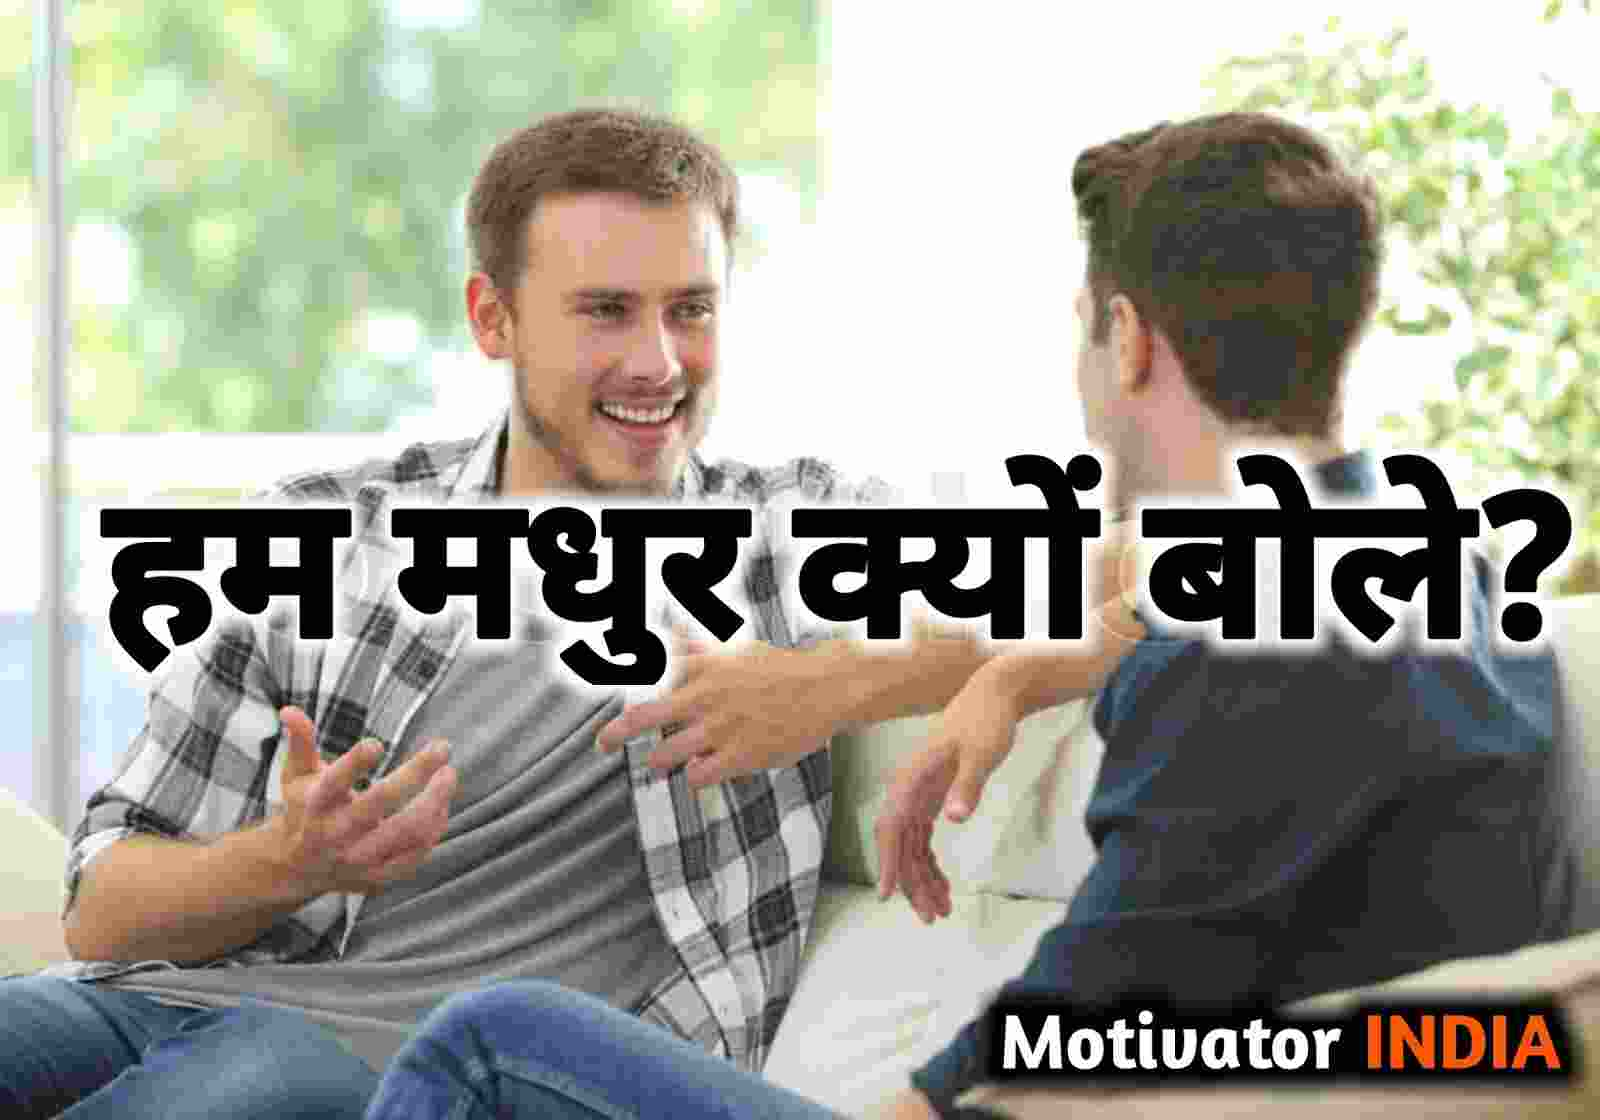 communication skills in hindi, communication skill, communication skill story, batchit ki kala, communication, speak sweet, speak sweetly story in hindi, communication skill in hindi, communication skill, personality development skill, personal development skill